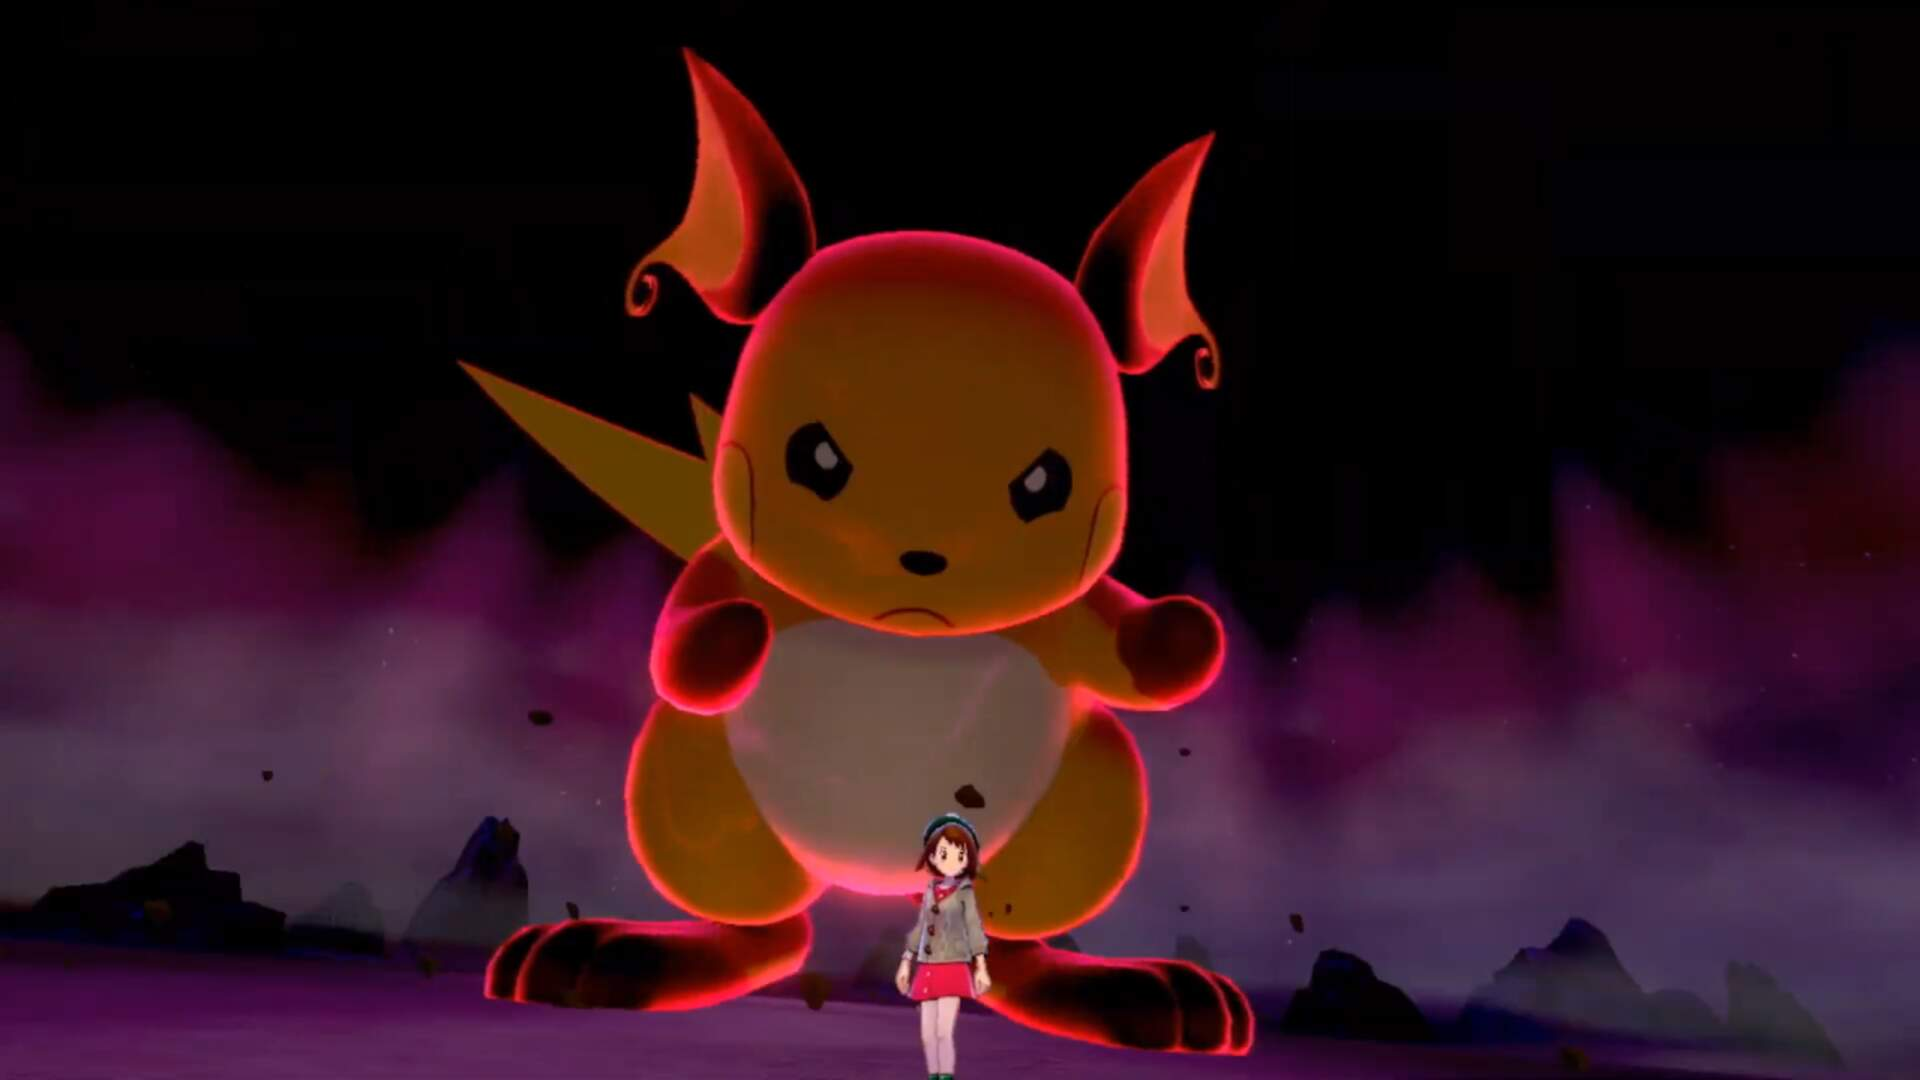 A Hacked Pokemon is Wreaking Havoc in Pokemon Sword and Shield, Which Means It's Technically a Digimon